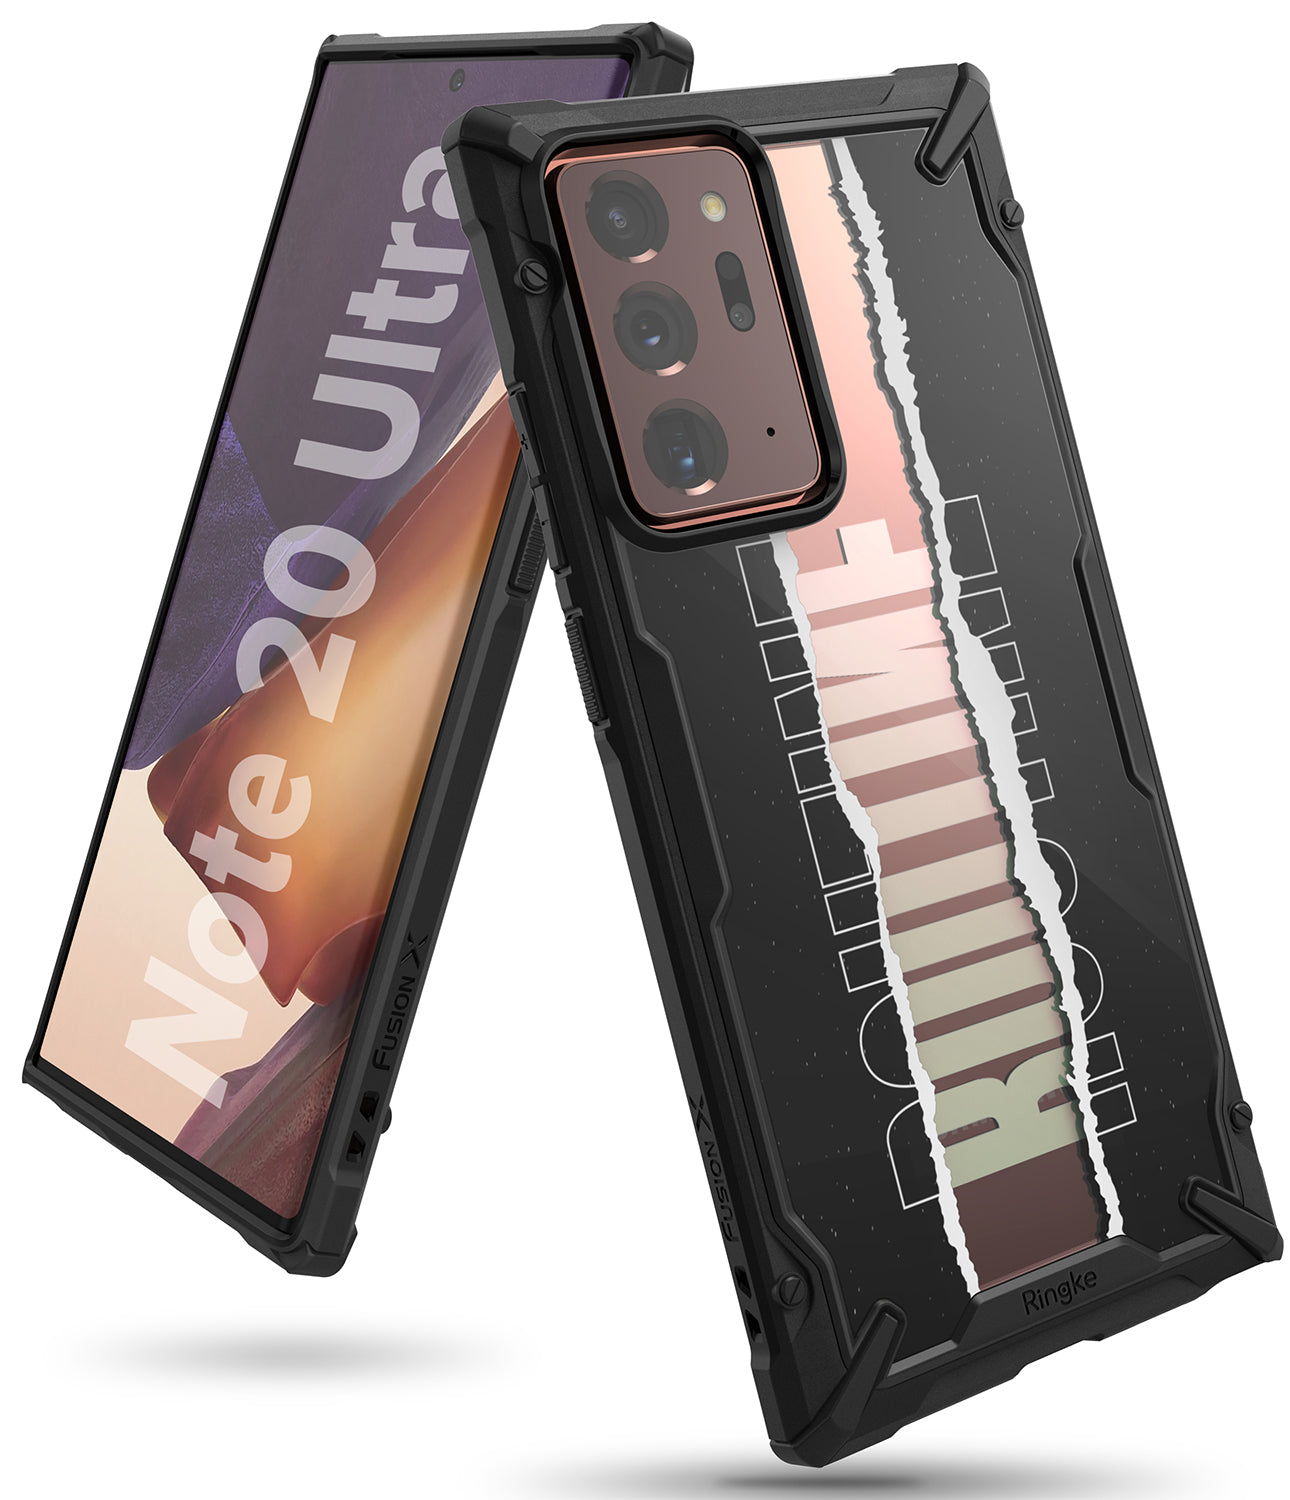 ringke fusion-x design case for galaxy note 20 ultra - routine